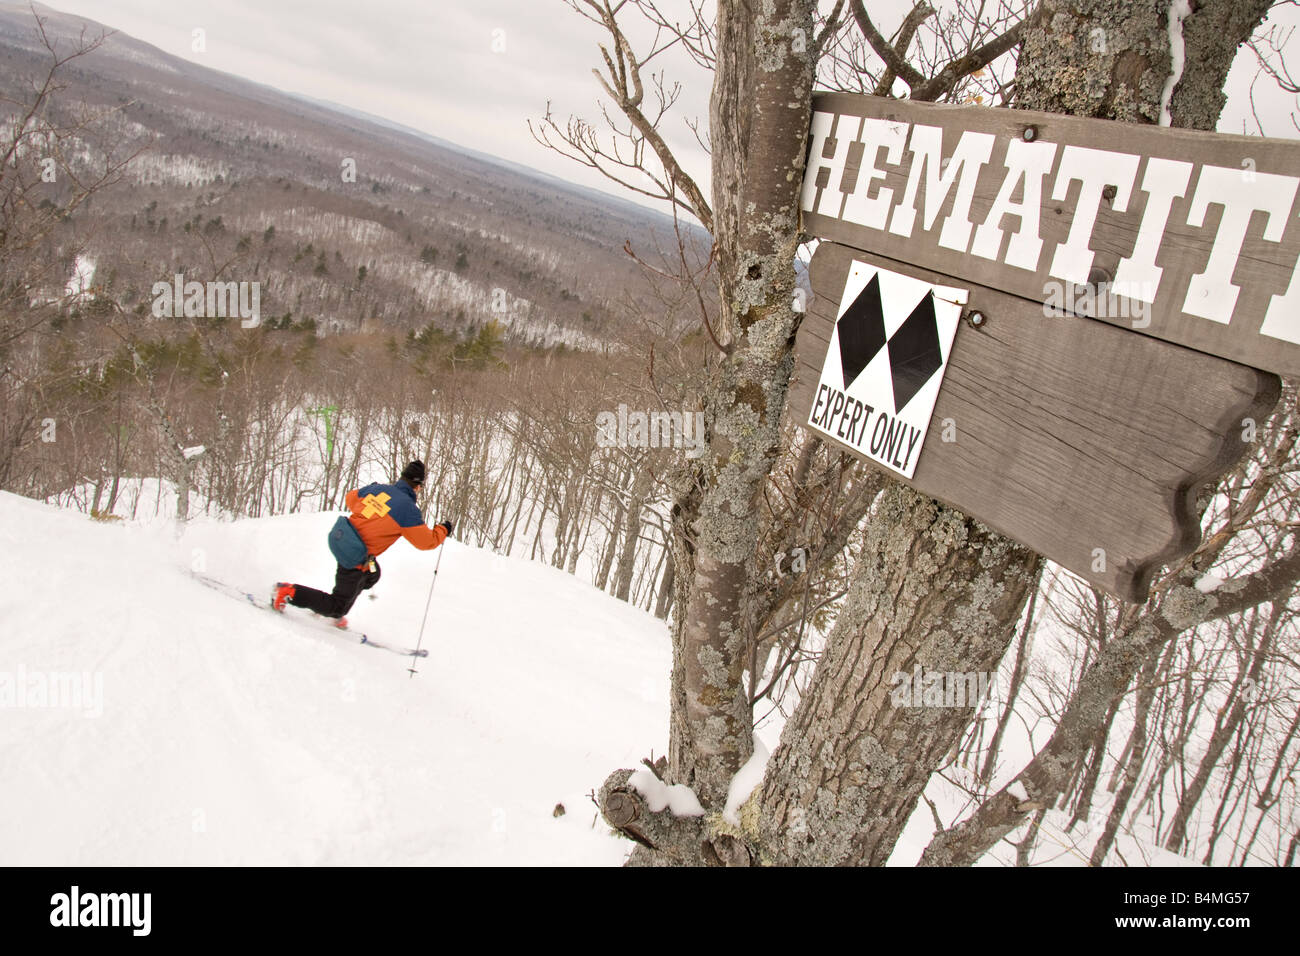 A Telemark Skier Enters Double Black Diamond Run For Experts Only At Mount Bohemia Ski Resort In Michigans Upper Peninsula